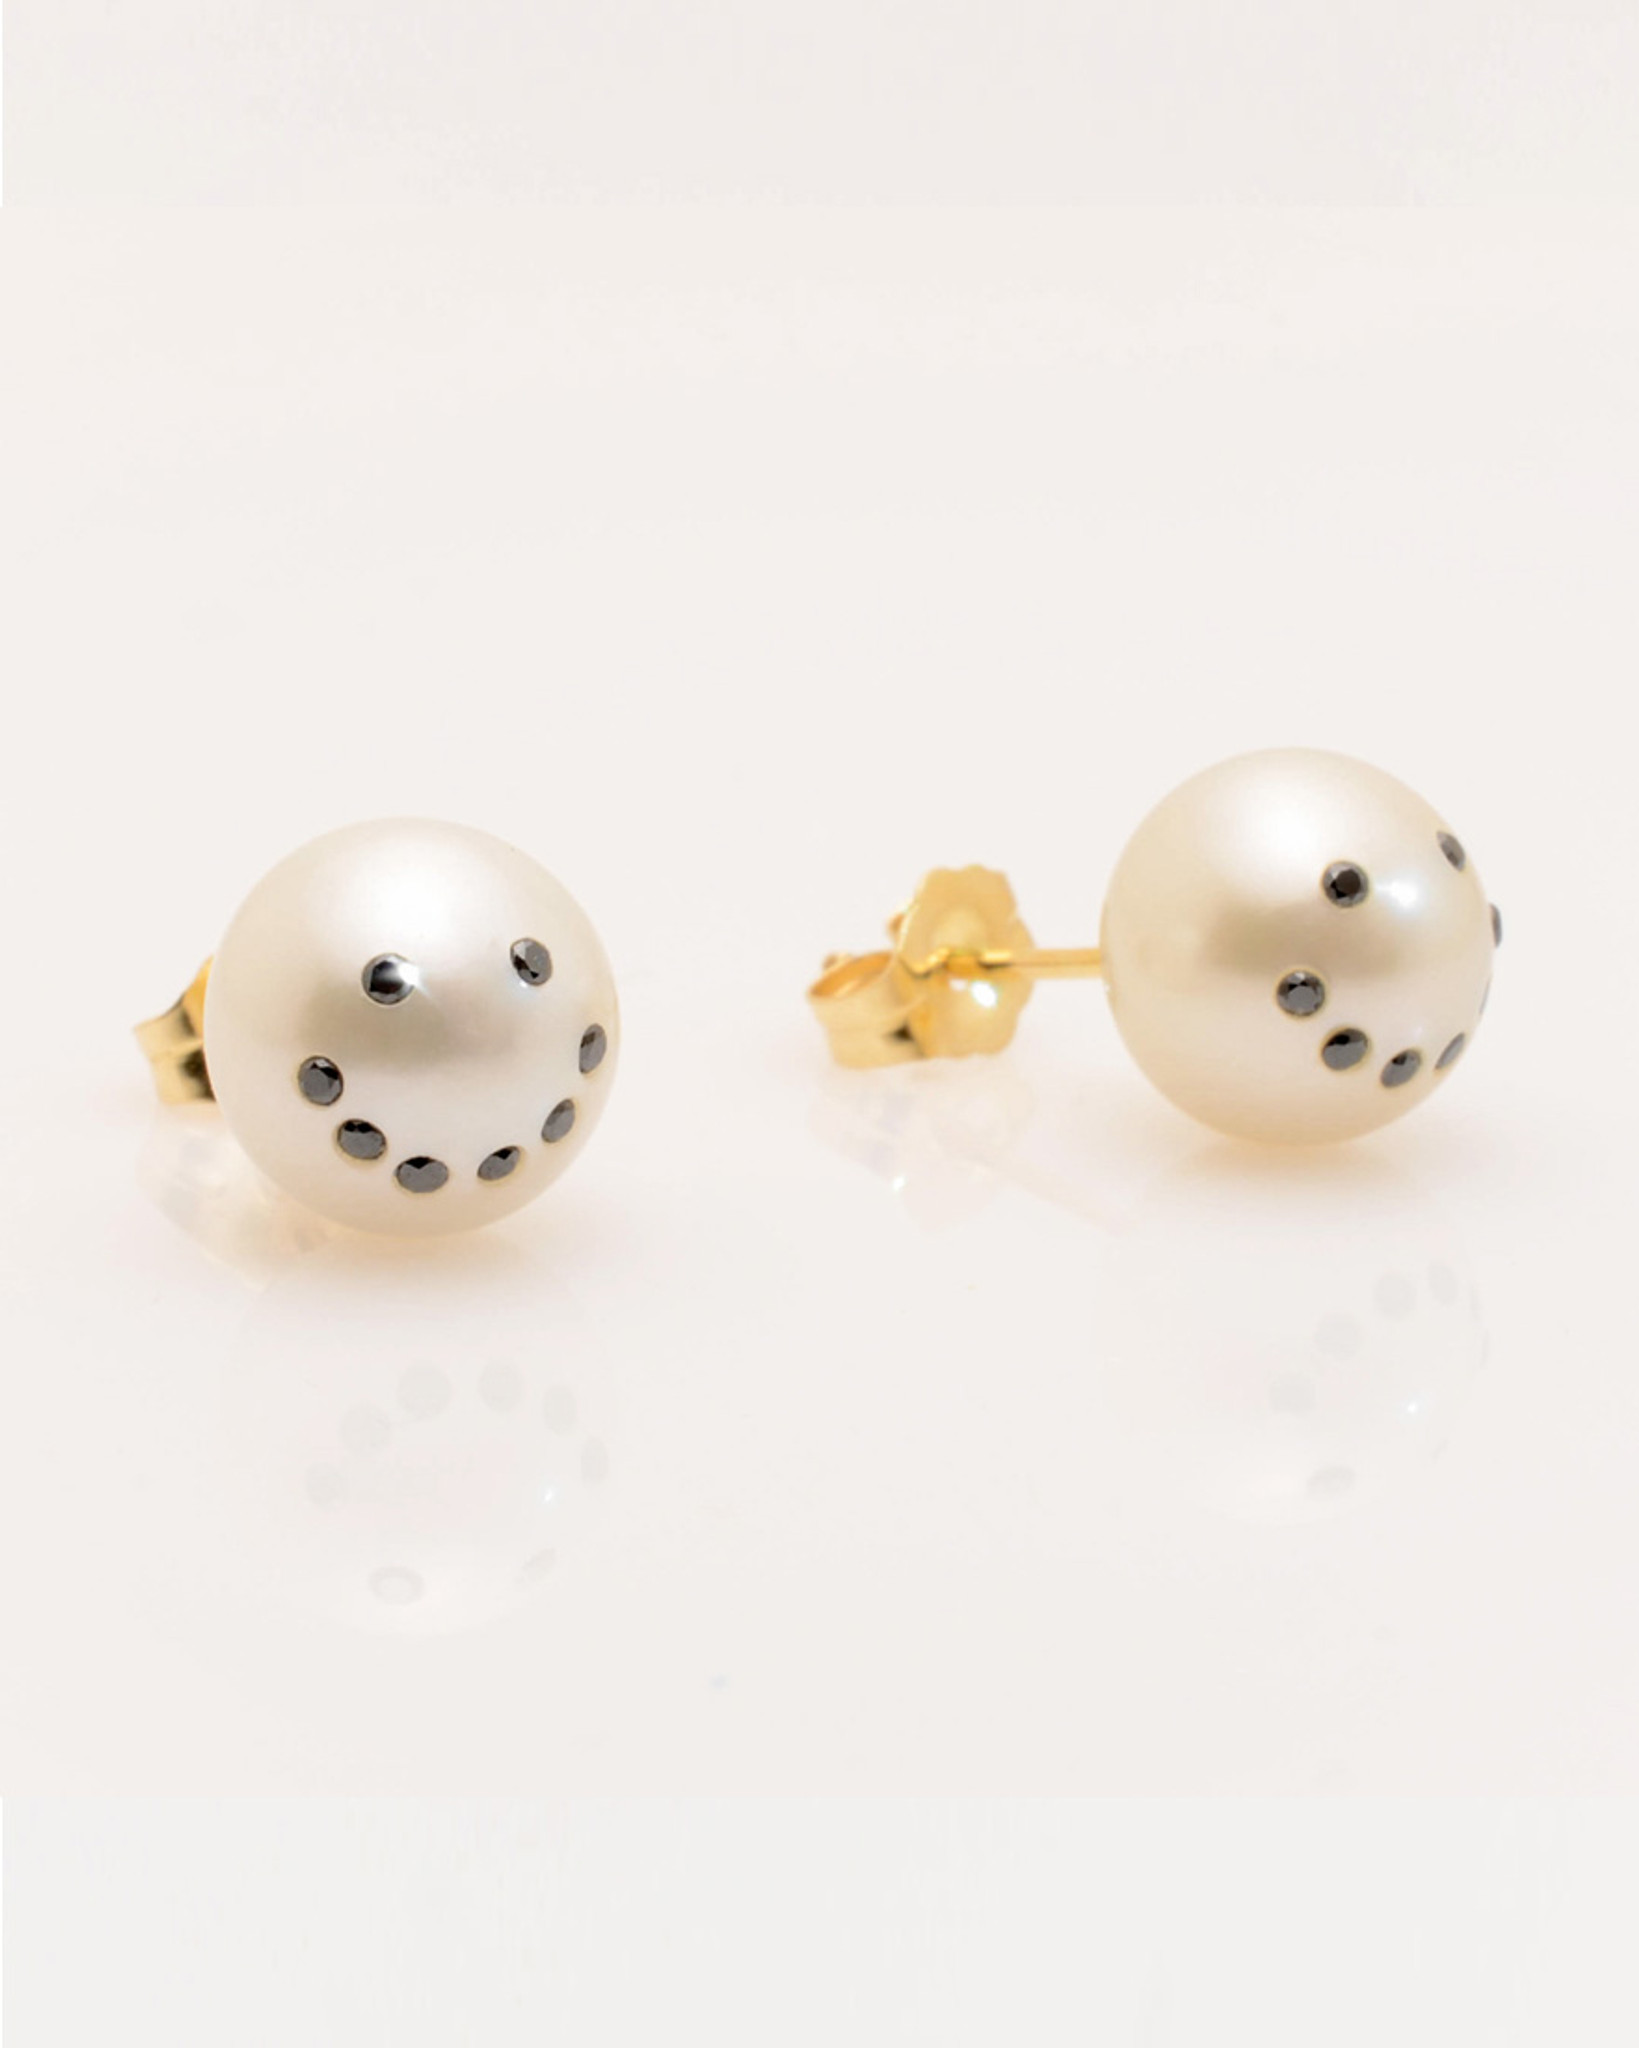 3/4 view of Cultured Freshwater Pearl Earrings with Smiley Emoji Diamond Pavè & 14k Gold Posts (8-9 mm) by Jewelry Designer Nektar De Stagni